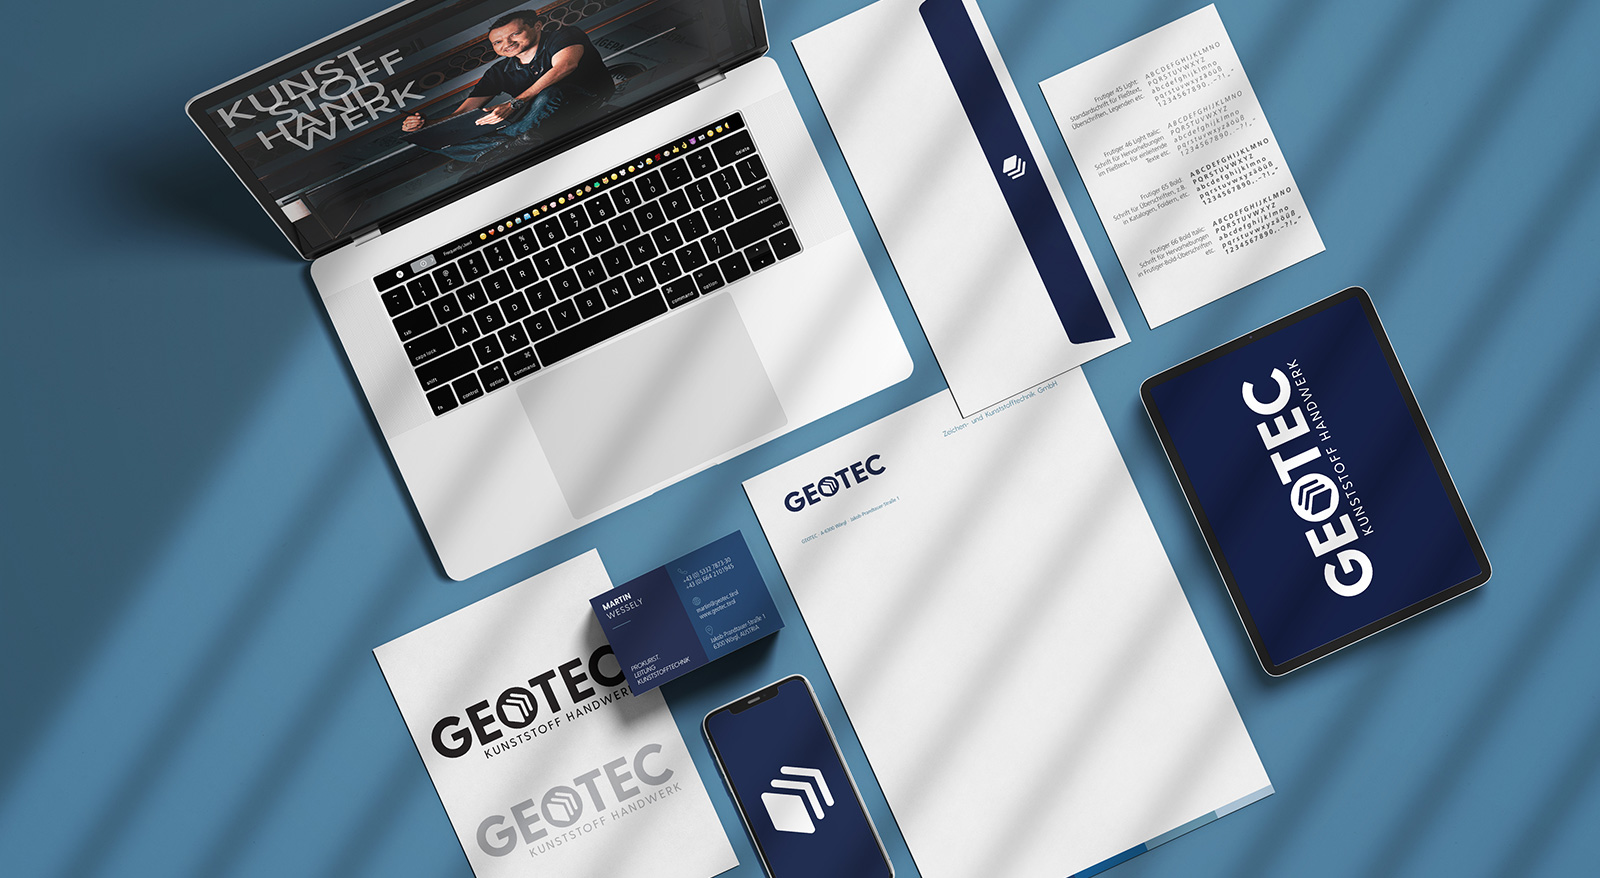 GEOTEC Relaunch